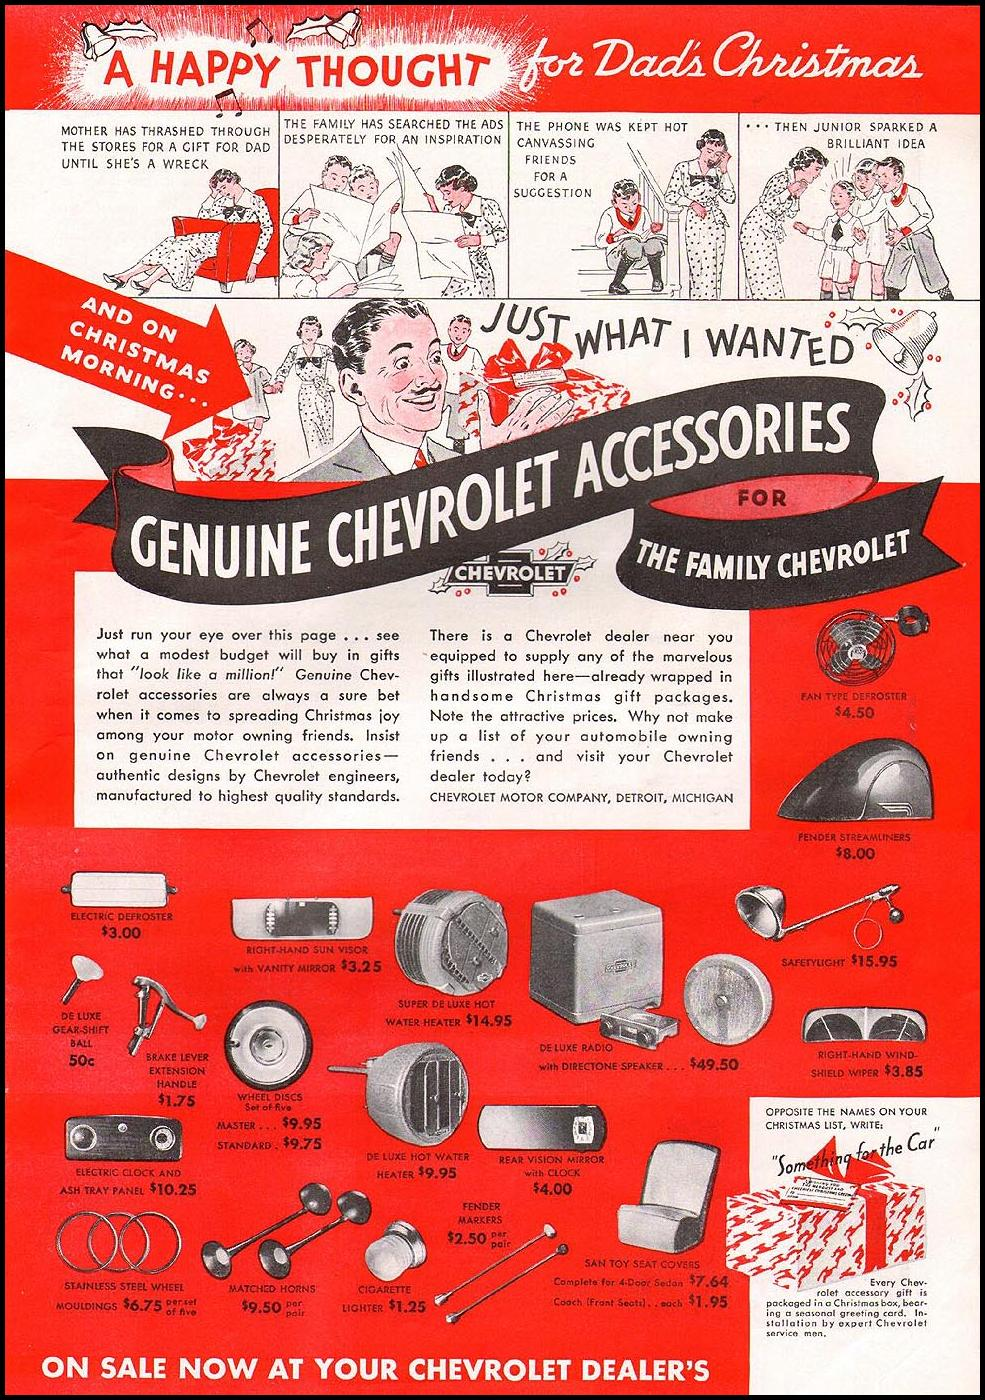 GENUINE CHEVROLET ACCESSORIES GOOD HOUSEKEEPING 12/01/1935 p. 111